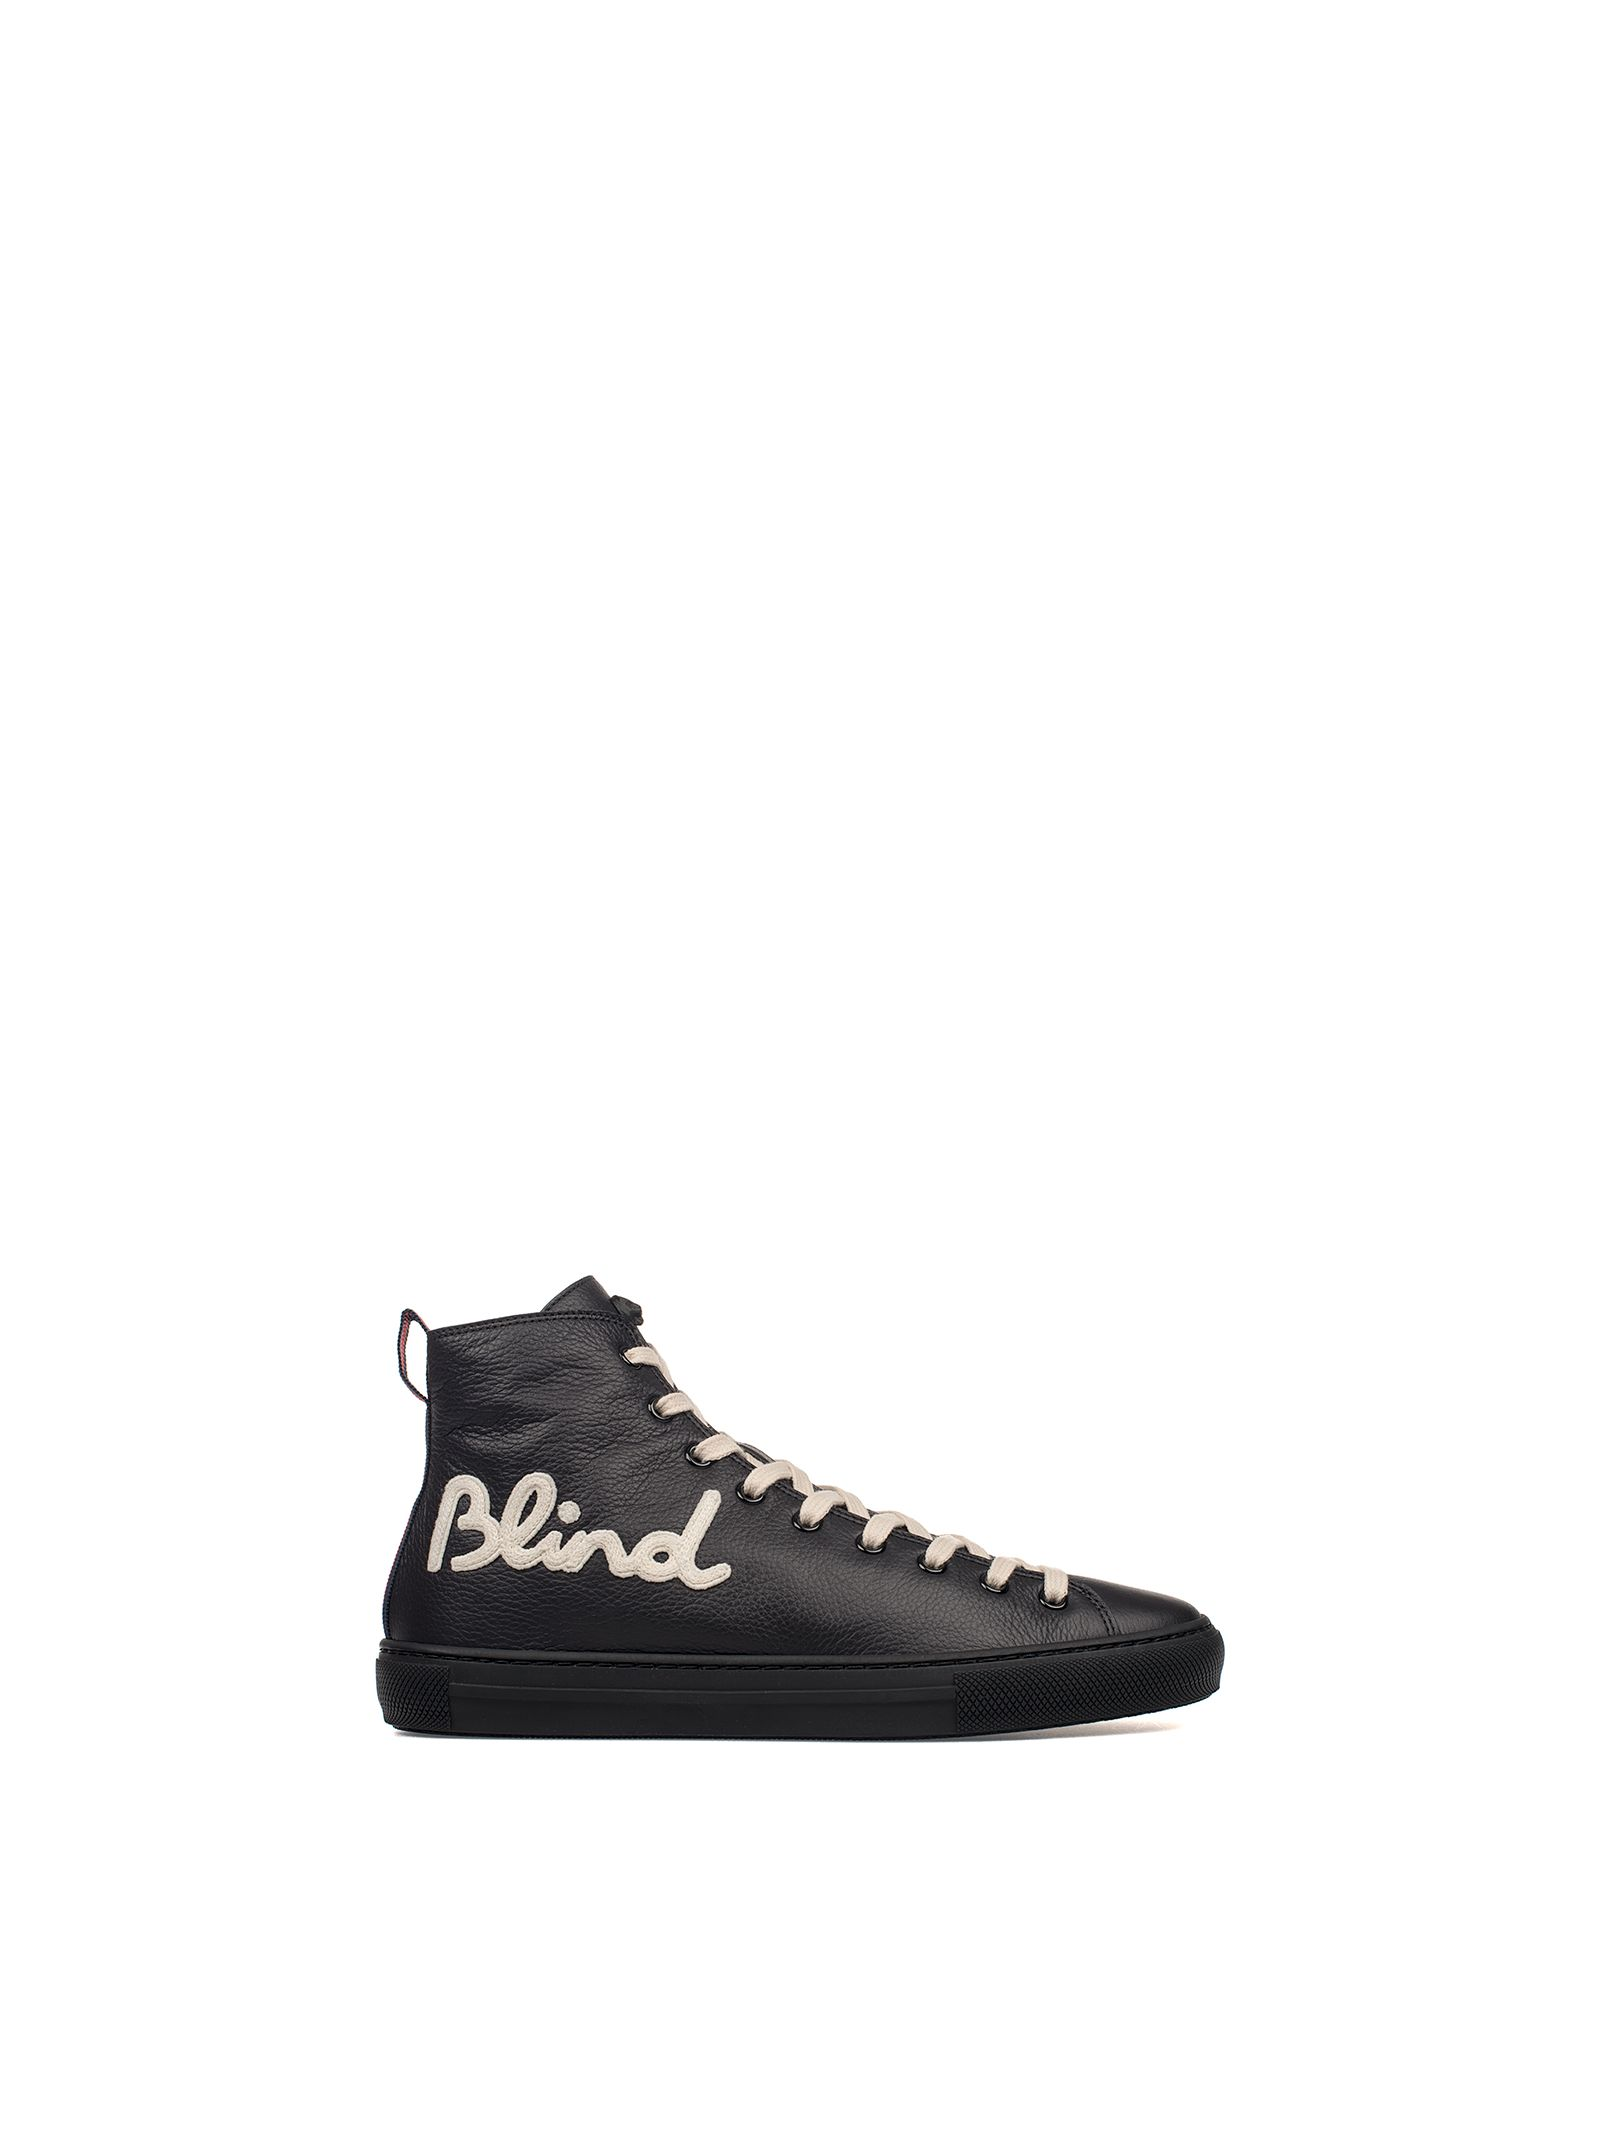 gucci male black blind for love leather hightop sneakers